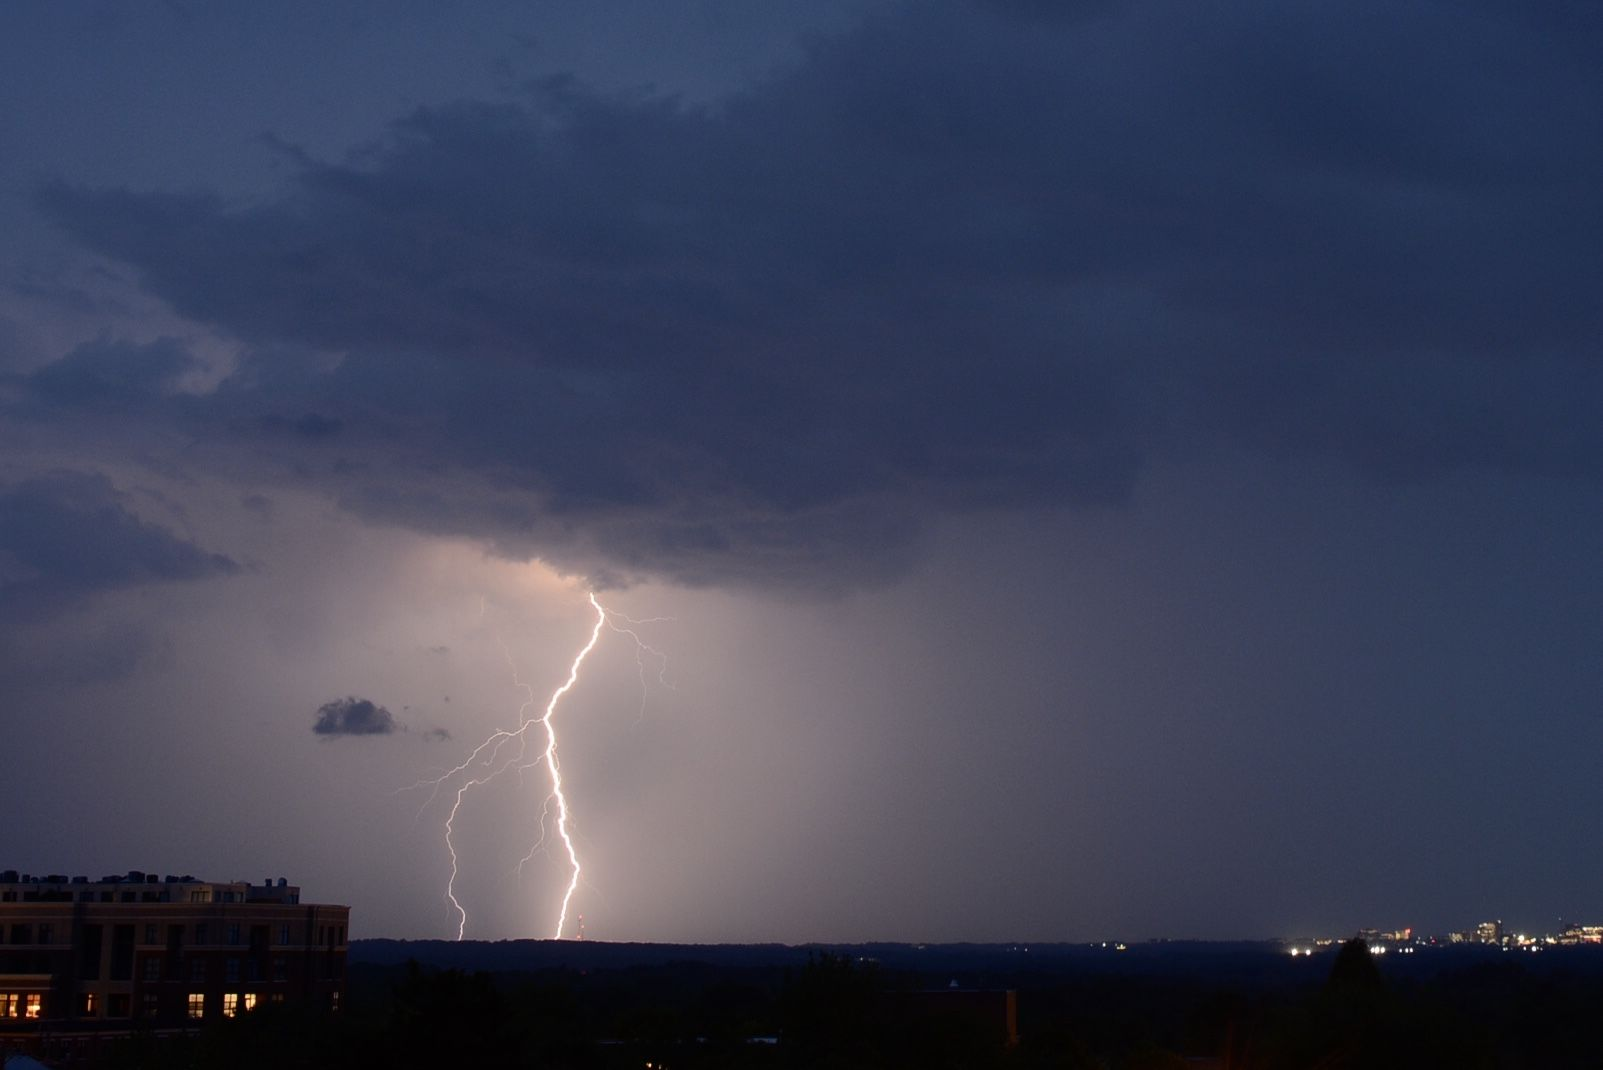 Lightning strikes in Northwest D.C. during severe storms on Tuesday, May 15, 2018. (WTOP/Dave Dildine)